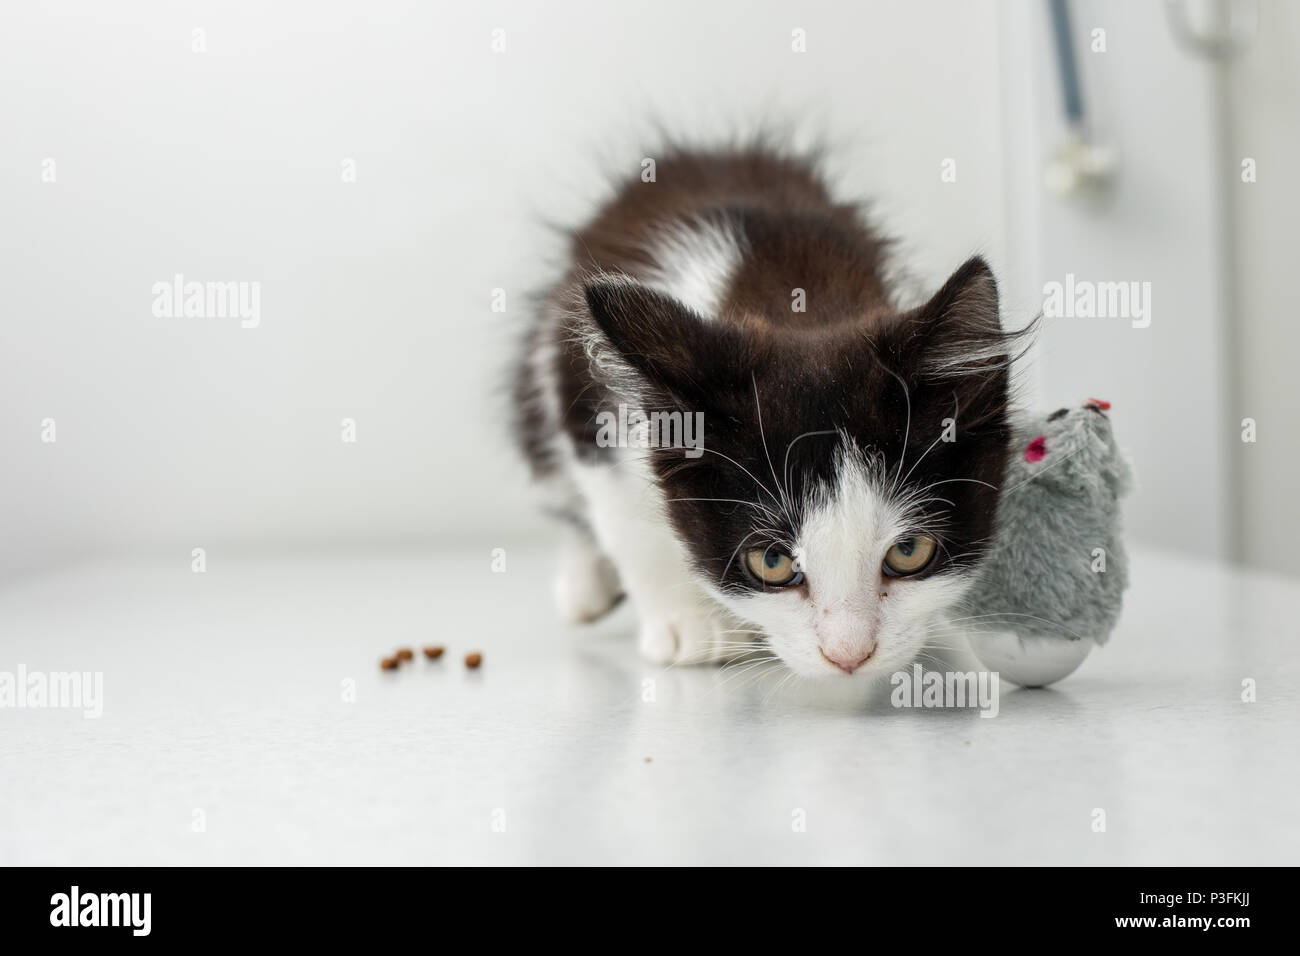 Little kitten at a veterinary clinic. Doctor and cat - Stock Image